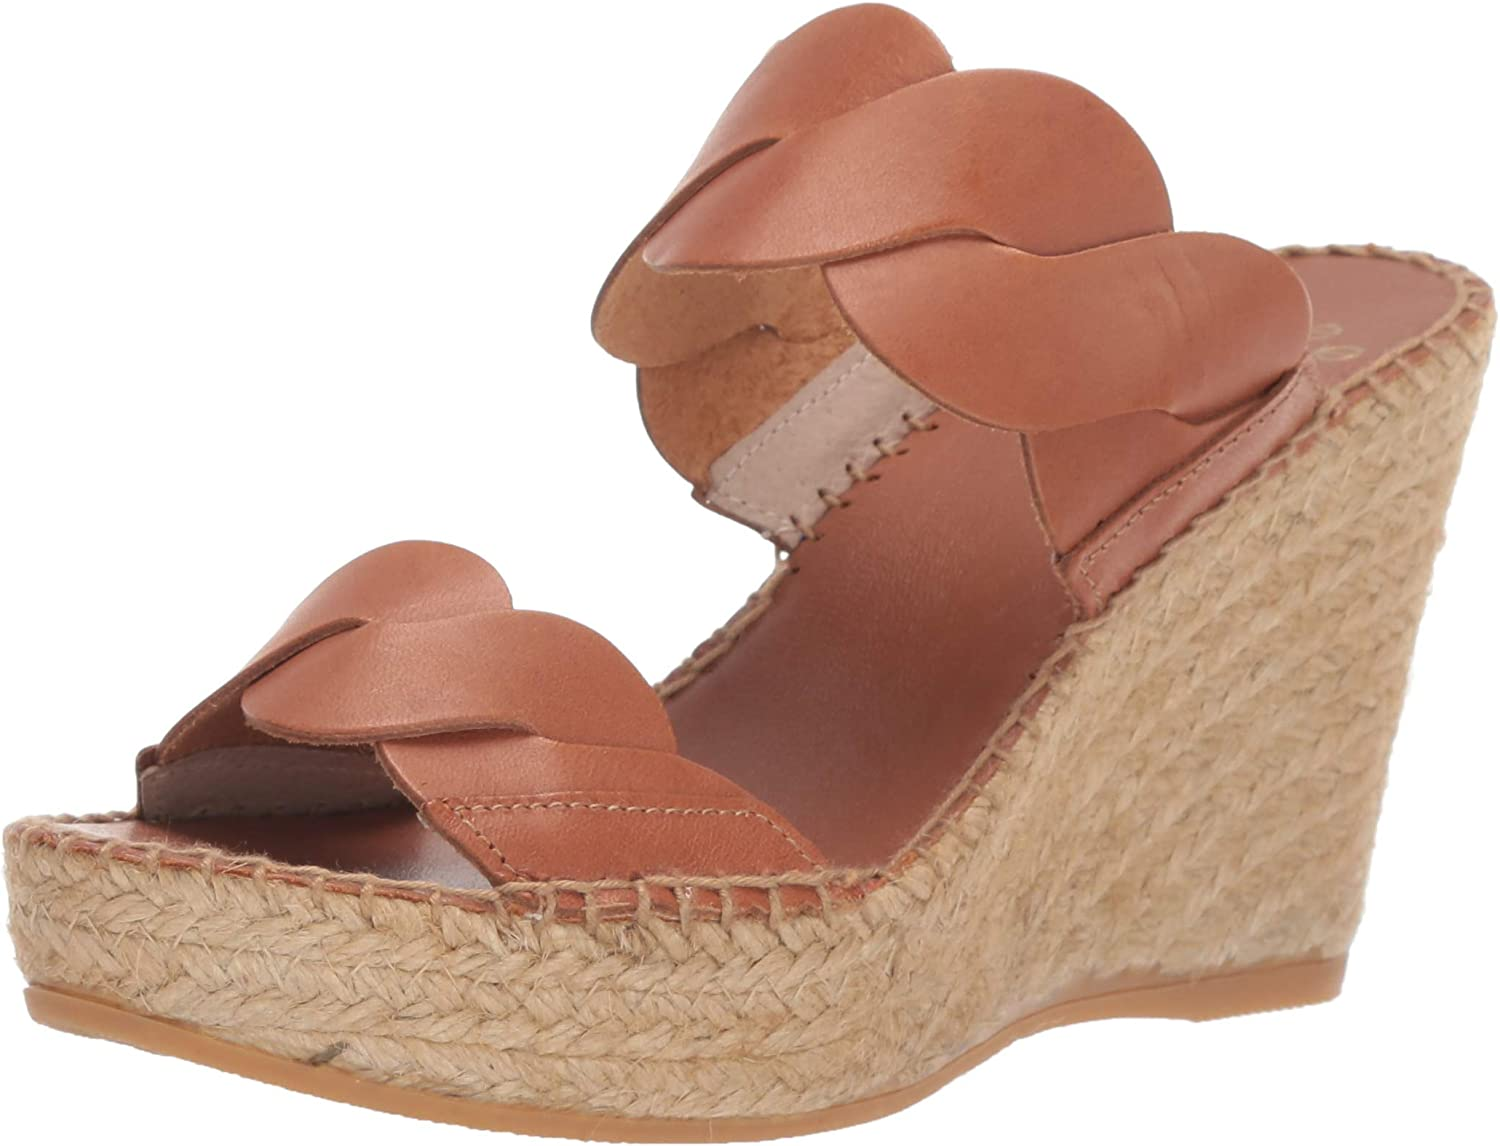 André Assous Women's Max 76% OFF Rumy Sandal Houston Mall Espadrille Wedge